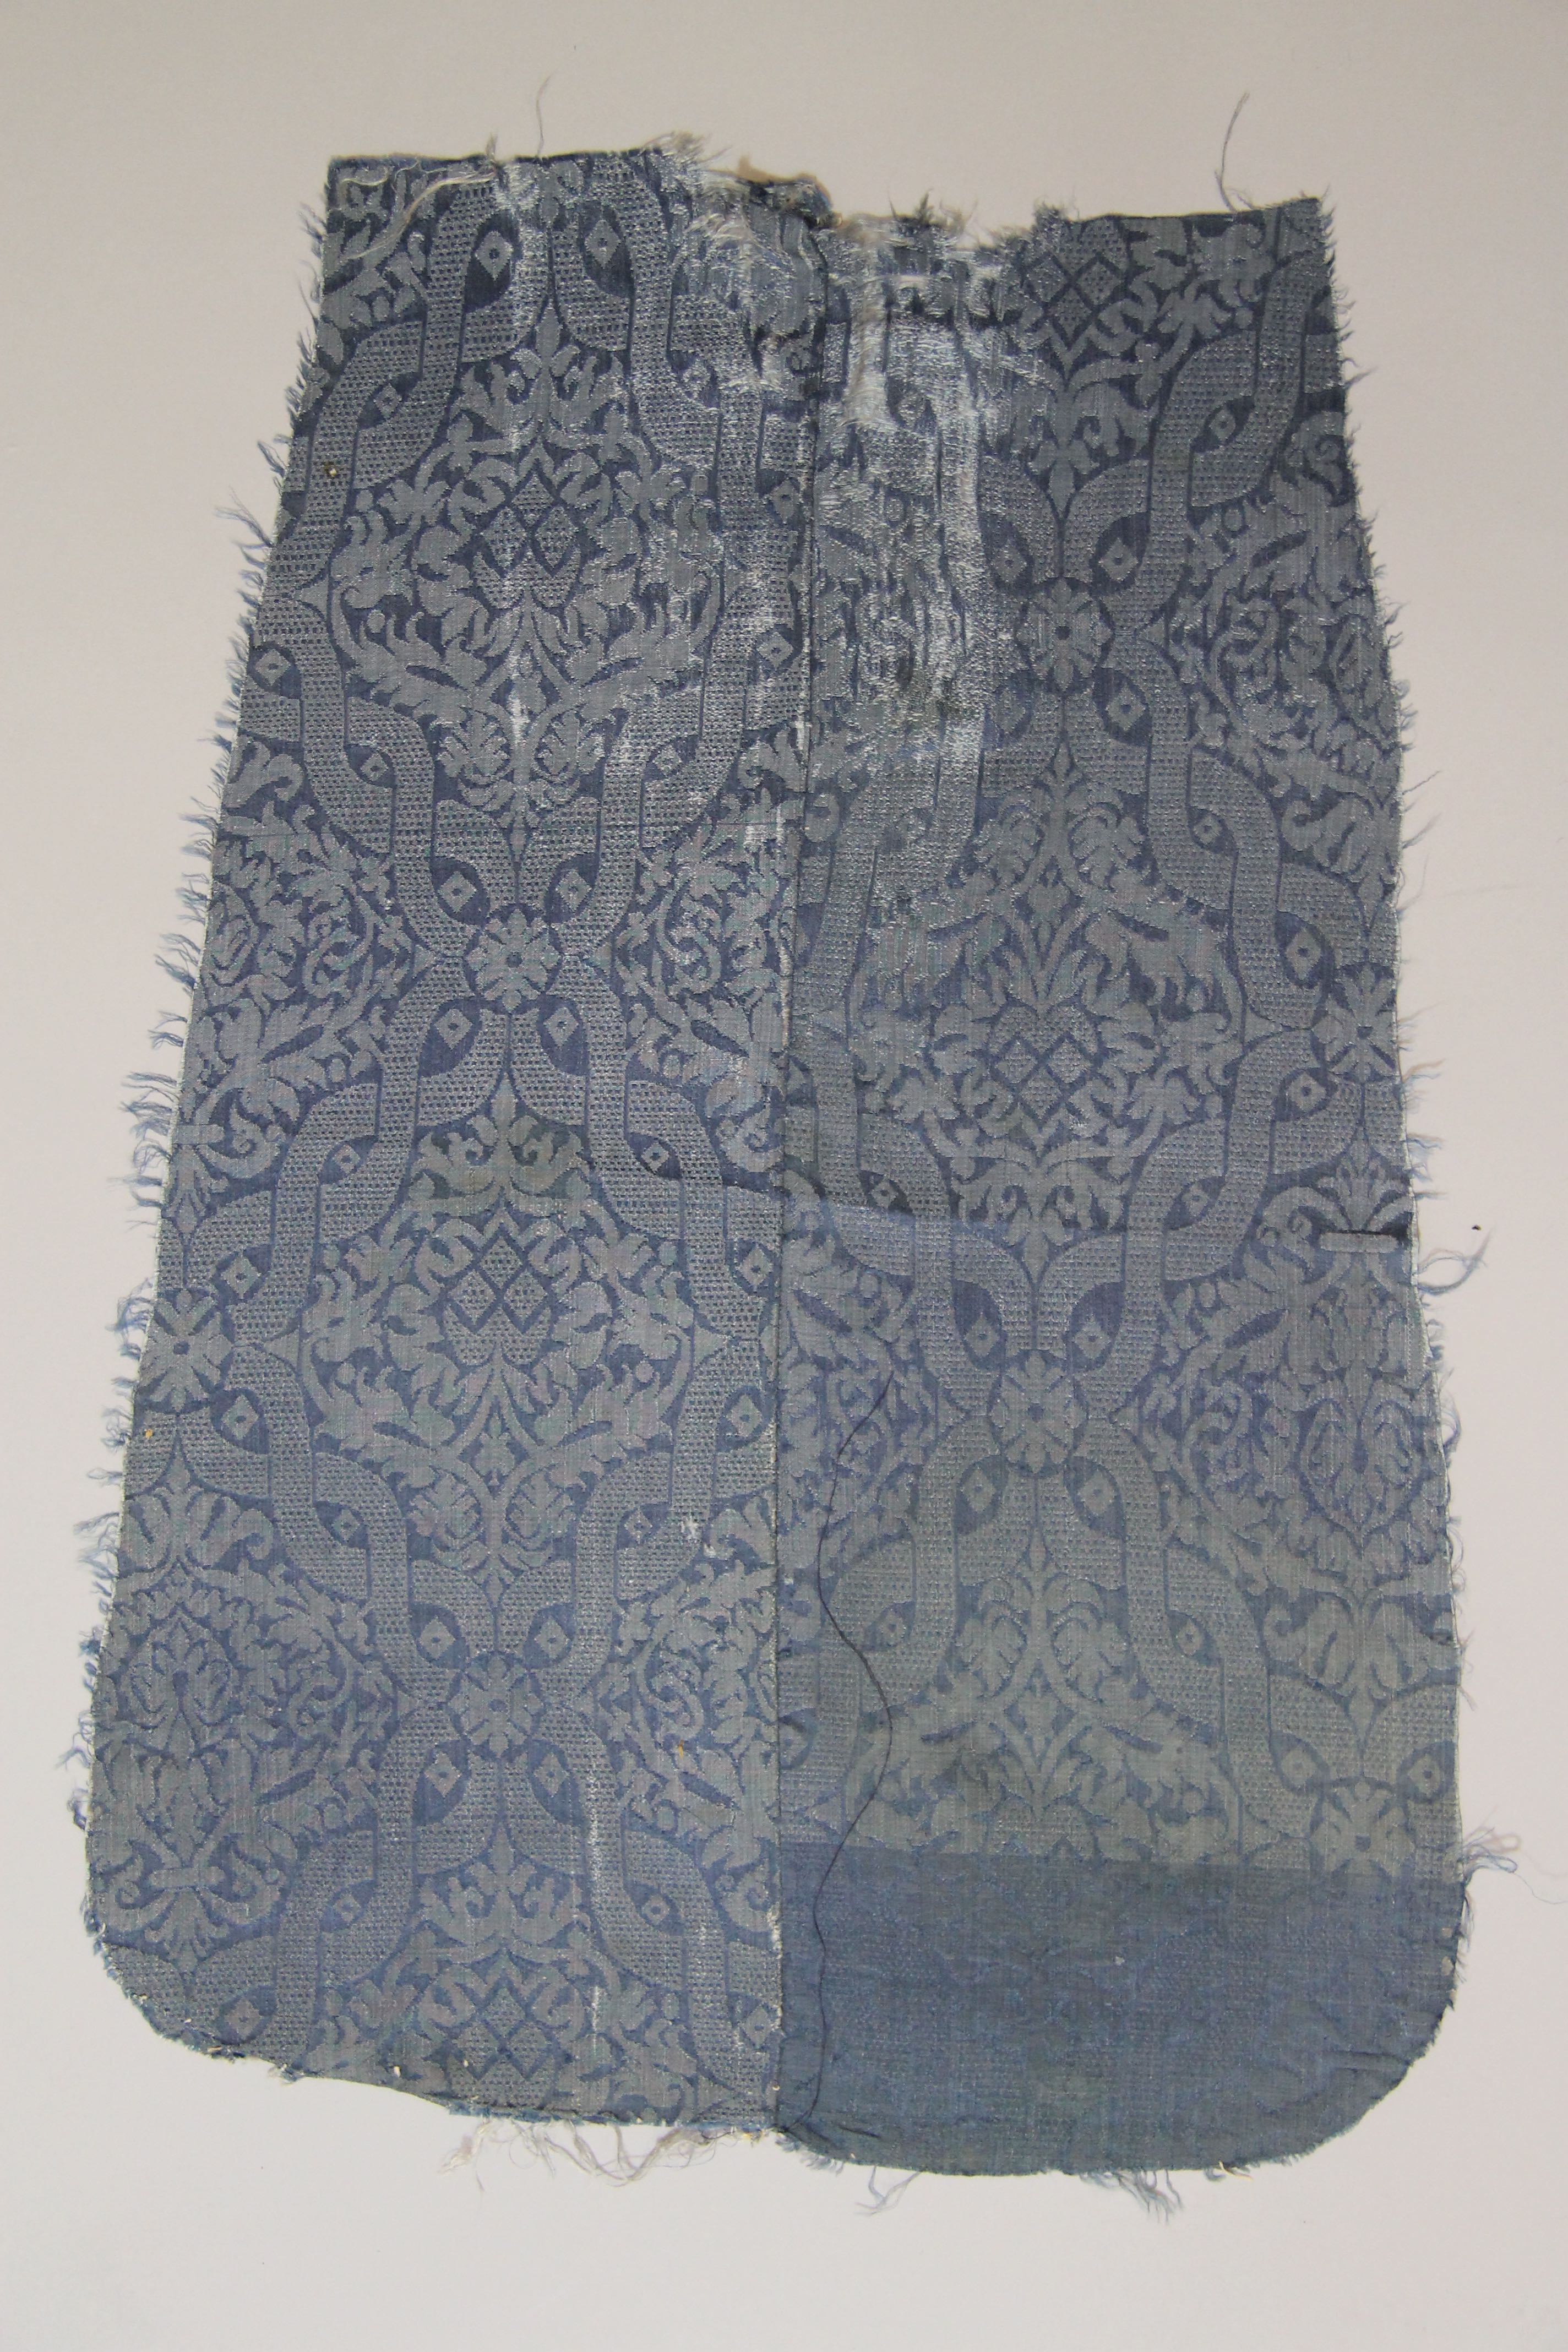 Panel from a garment (possibly a chasuble) (fragments)